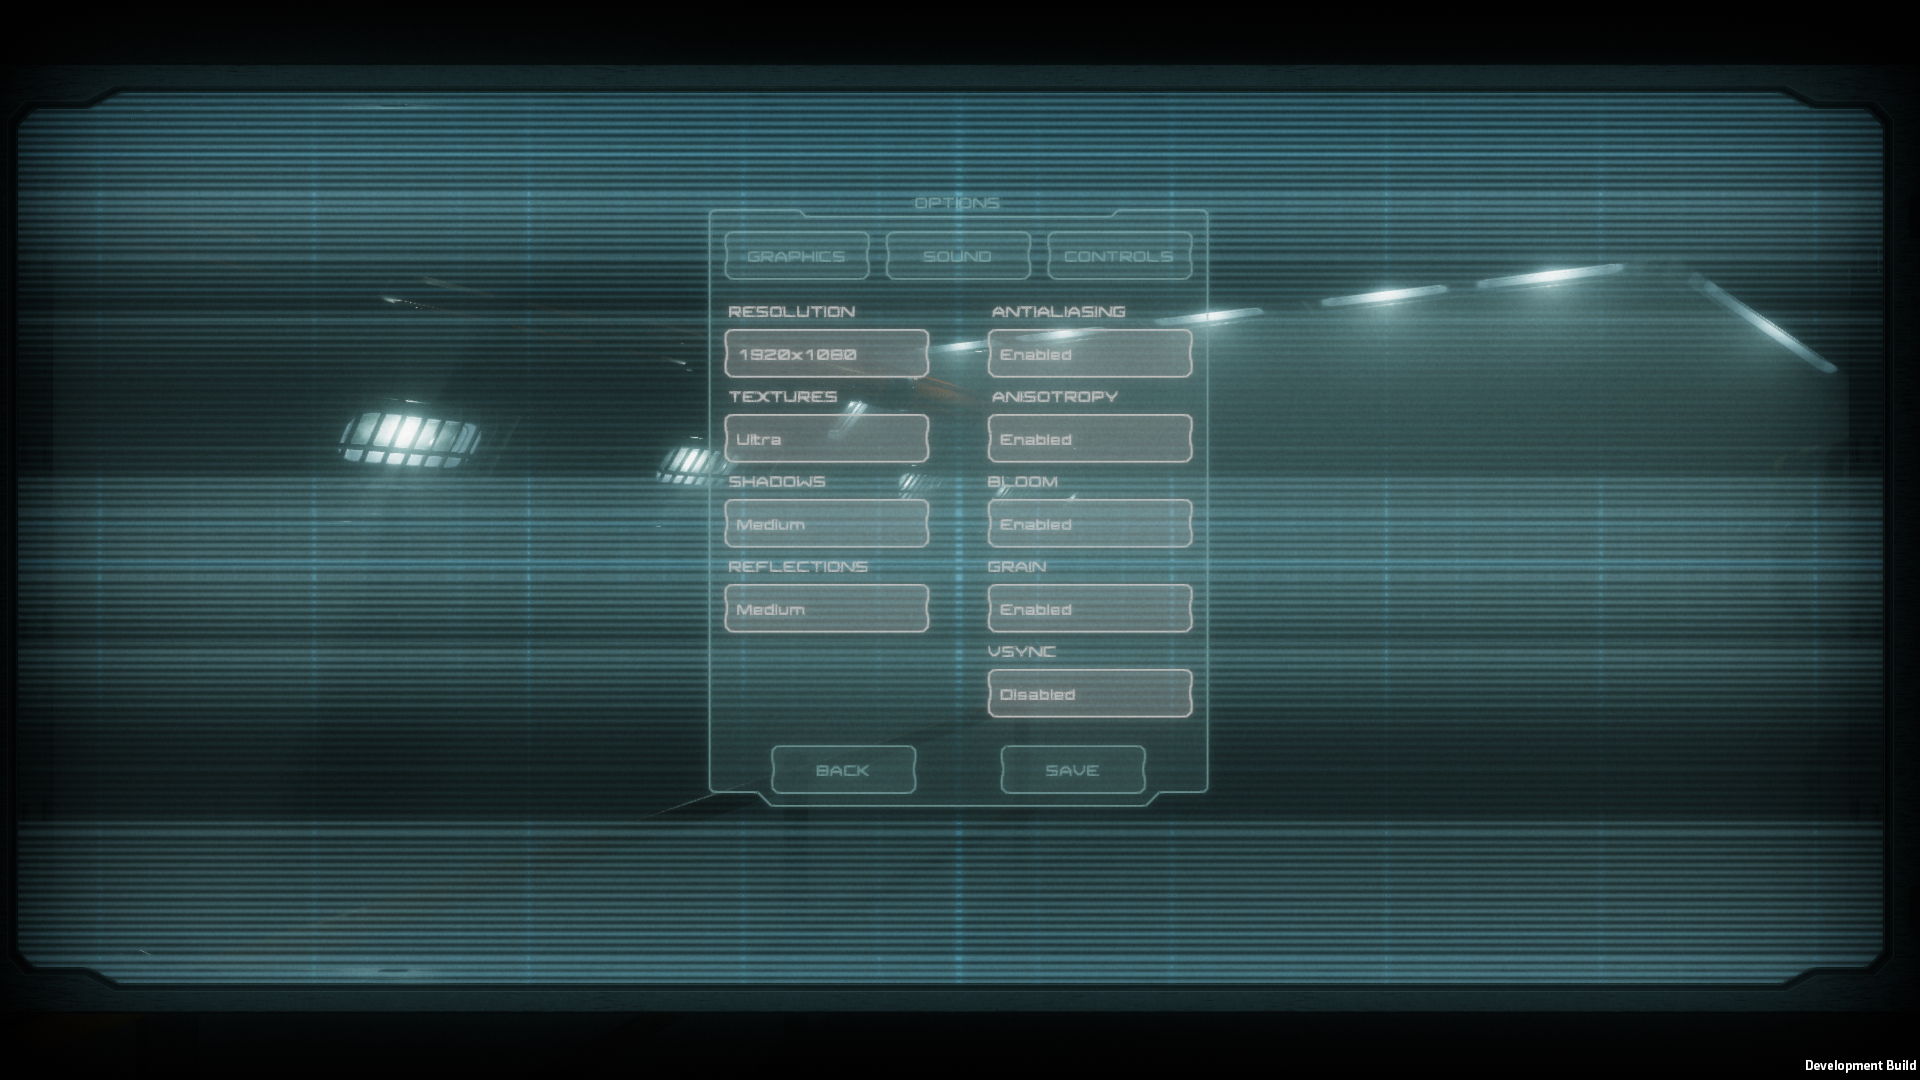 A screenshot of the options menu